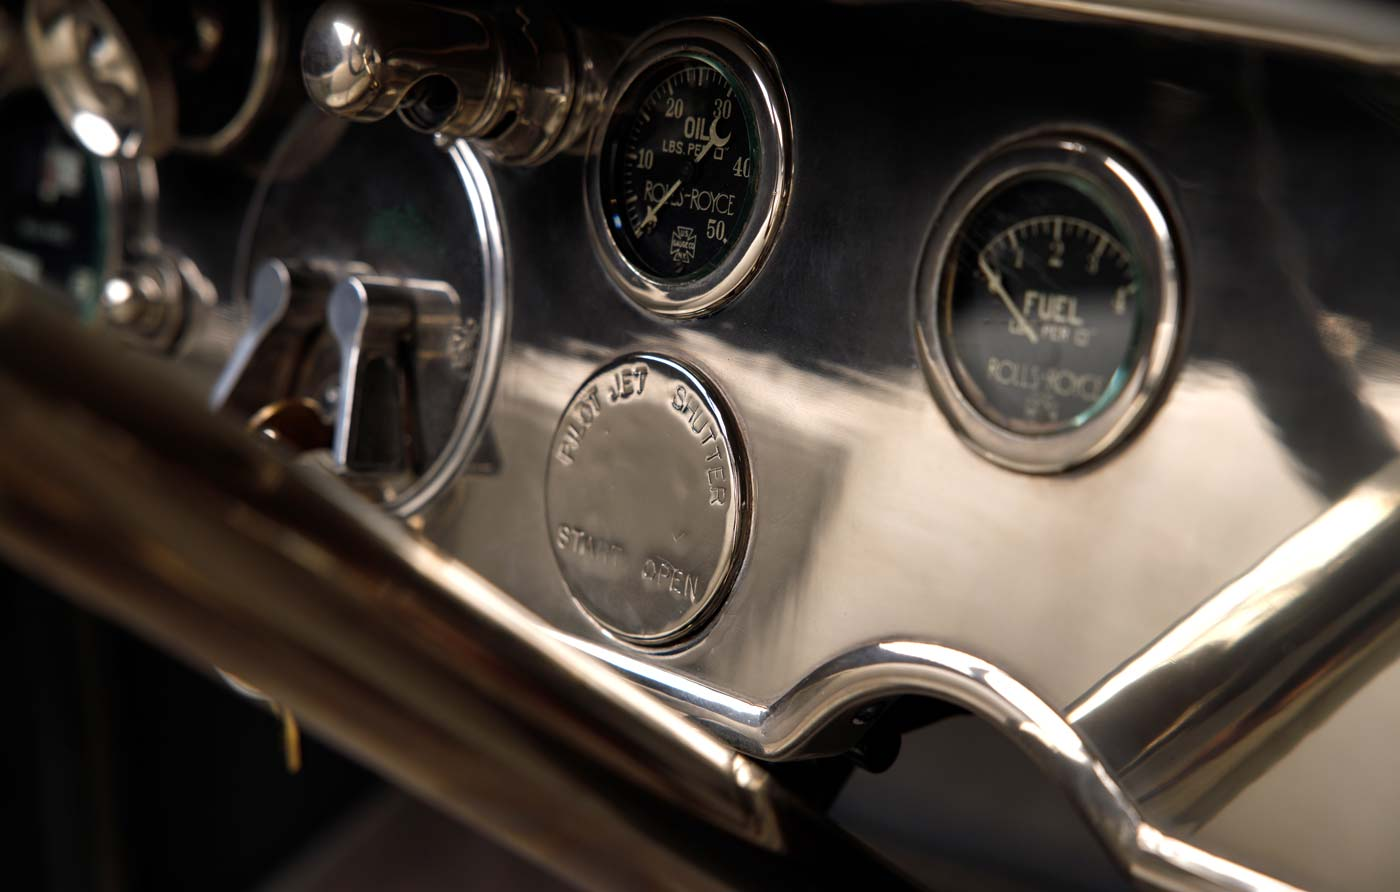 1923 Rolls-Royce Silver Ghost Pall Mall - The JBS Collection